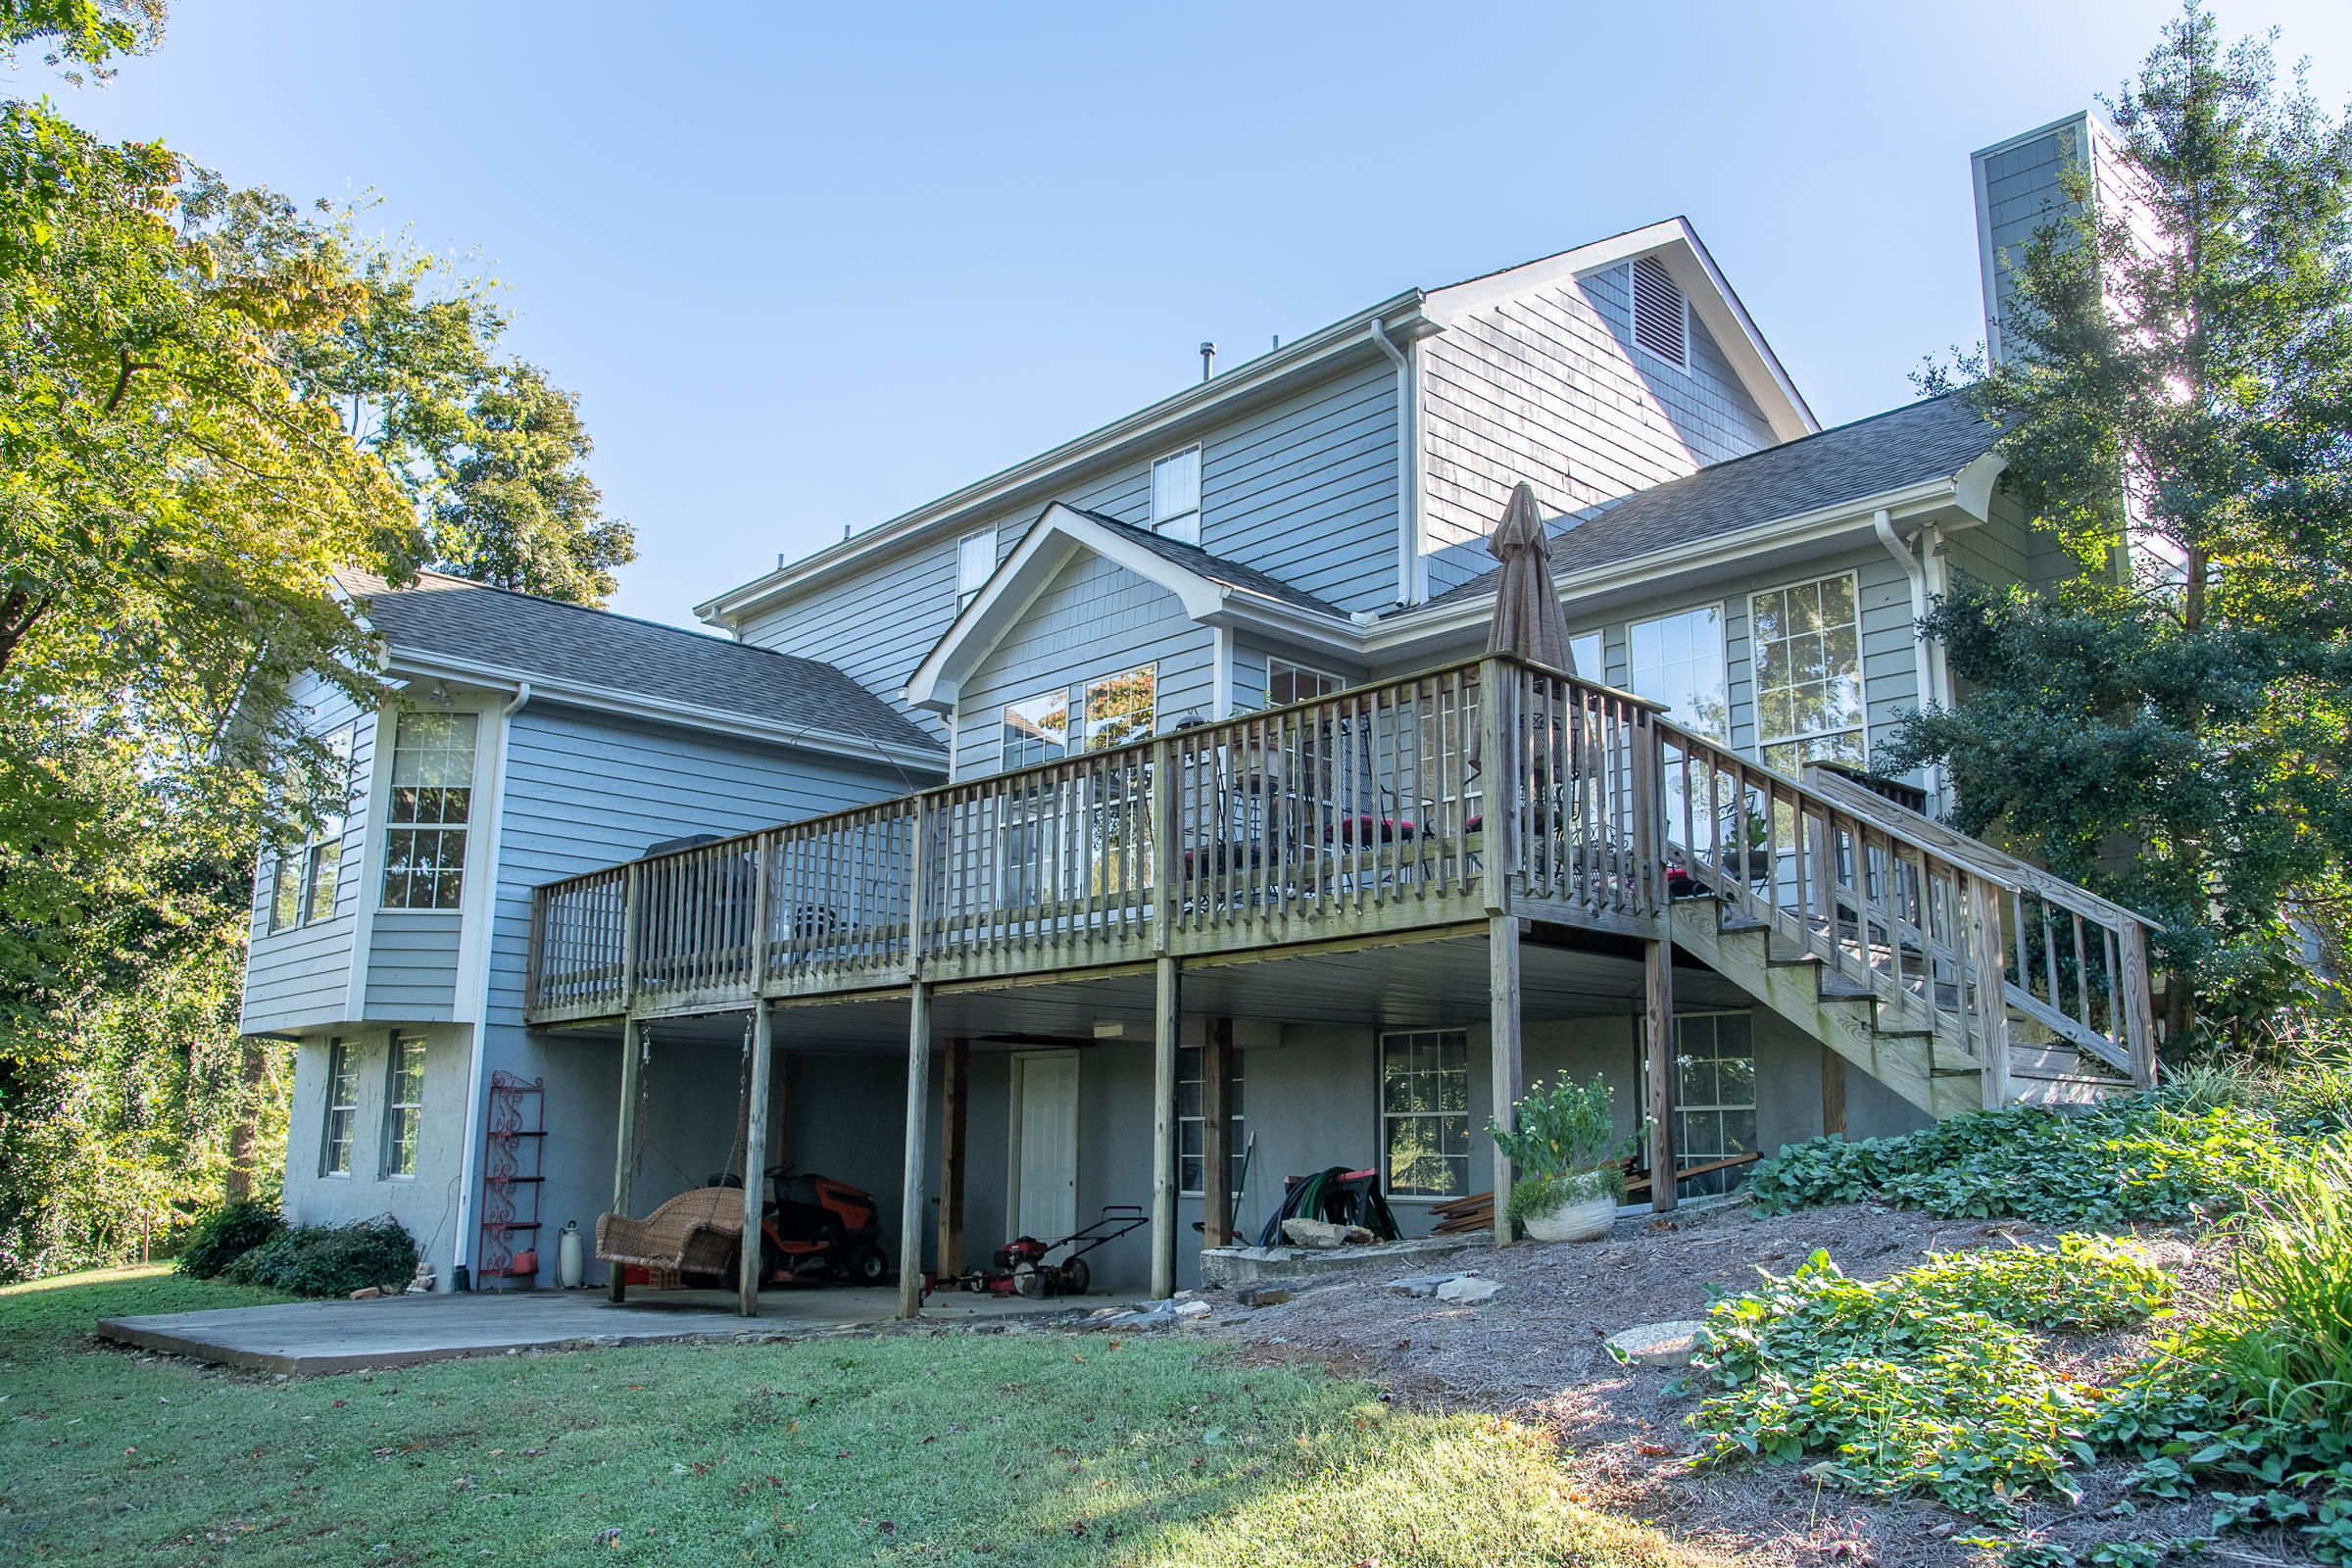 6415 Waconda Point Rd, Harrison, TN 37341